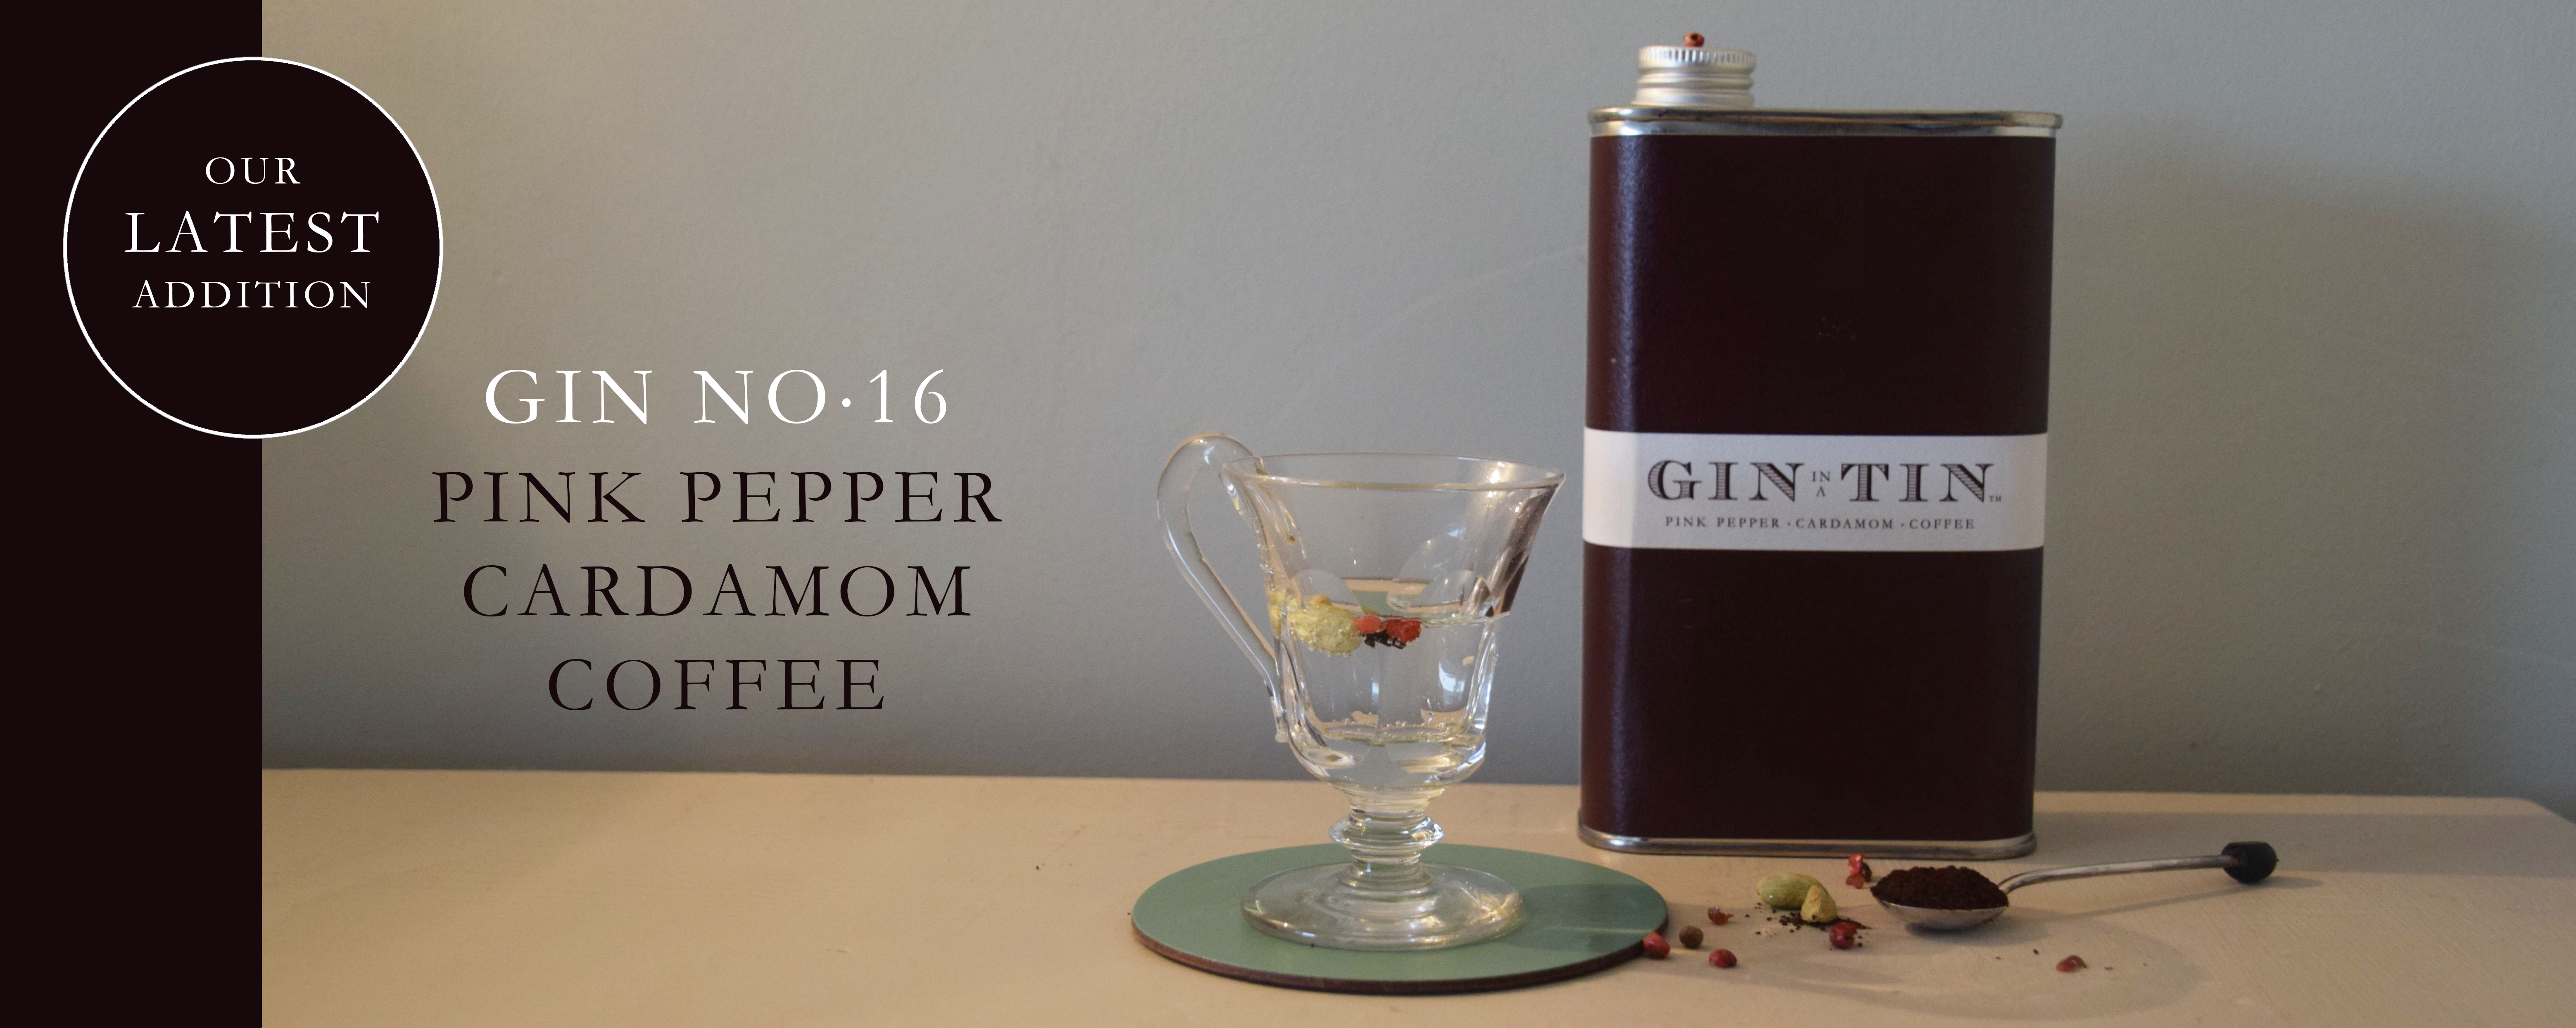 GIN IN A TIN - Blend NO.16 - PINK PEPPER CARDAMOM AND COFFEE